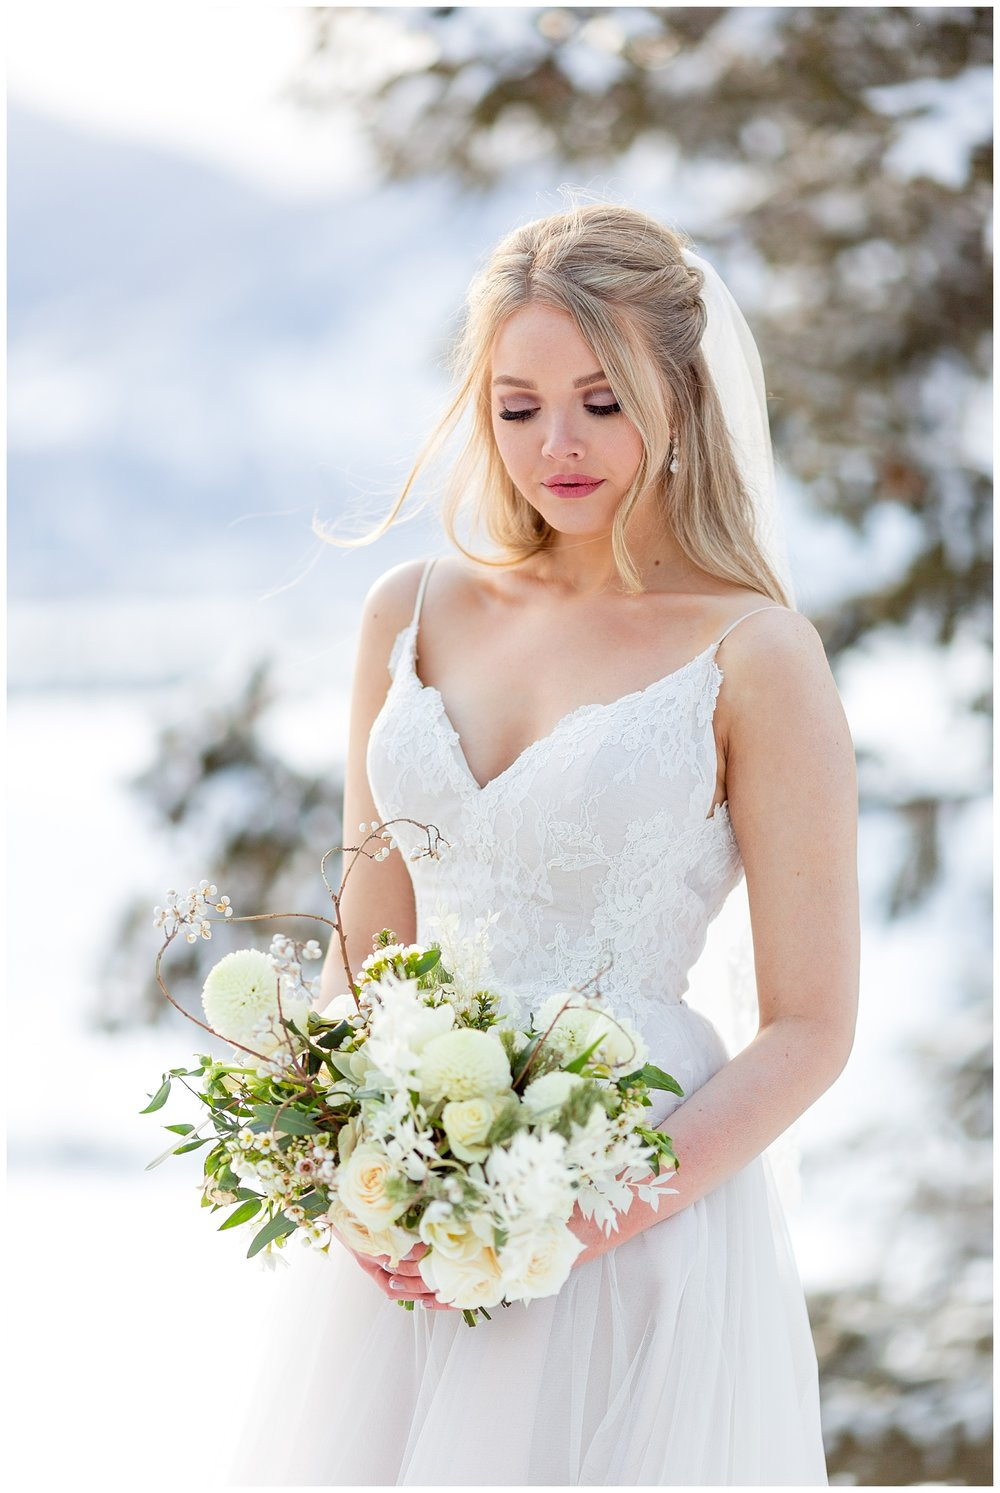 A bride looks down at her wedding bouquet while the wind blows her hair delicately